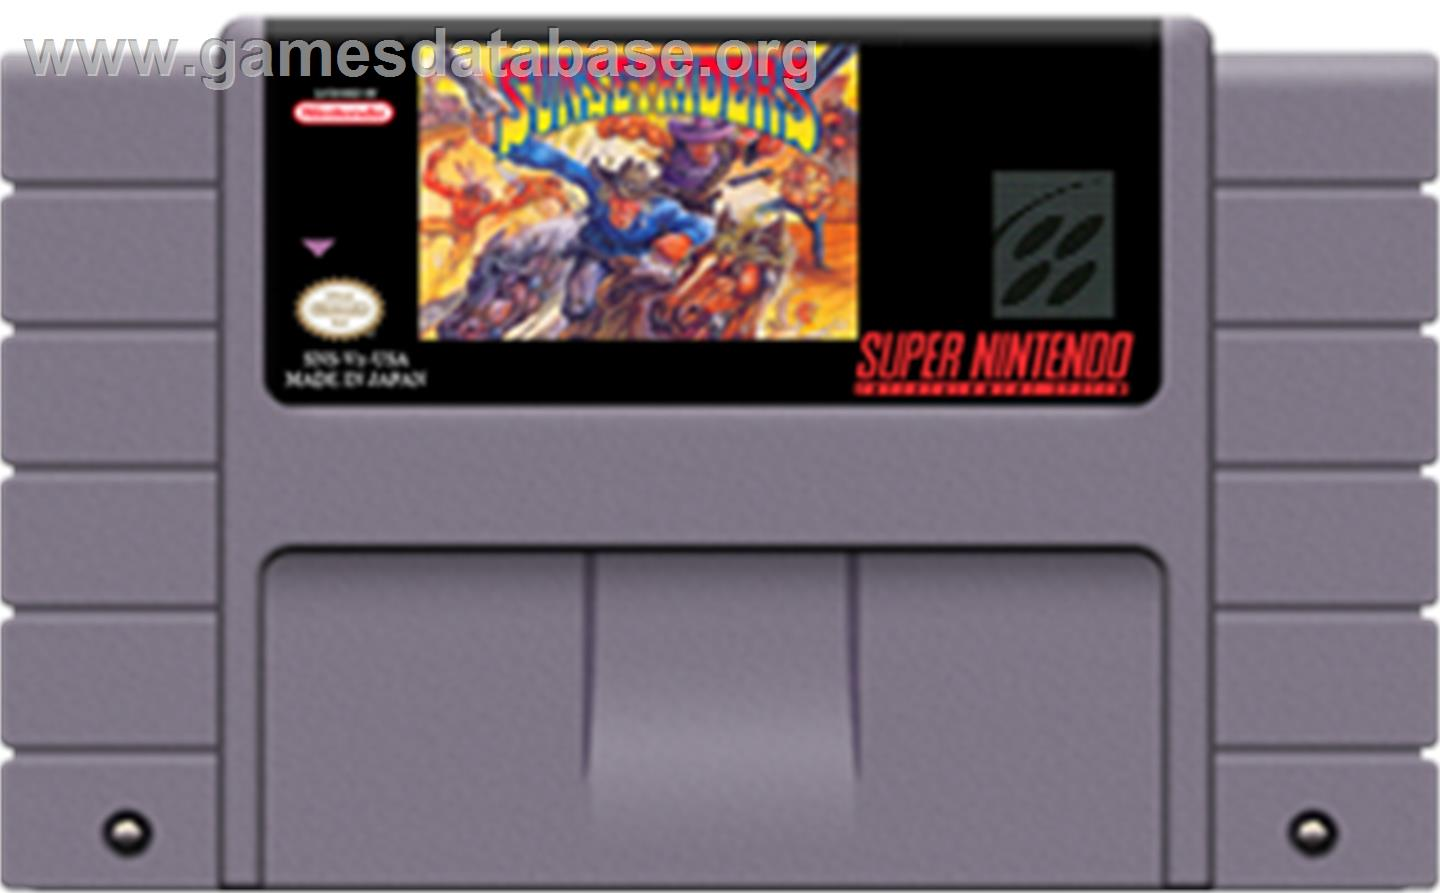 Sunset Riders - Nintendo SNES - Artwork - Cartridge